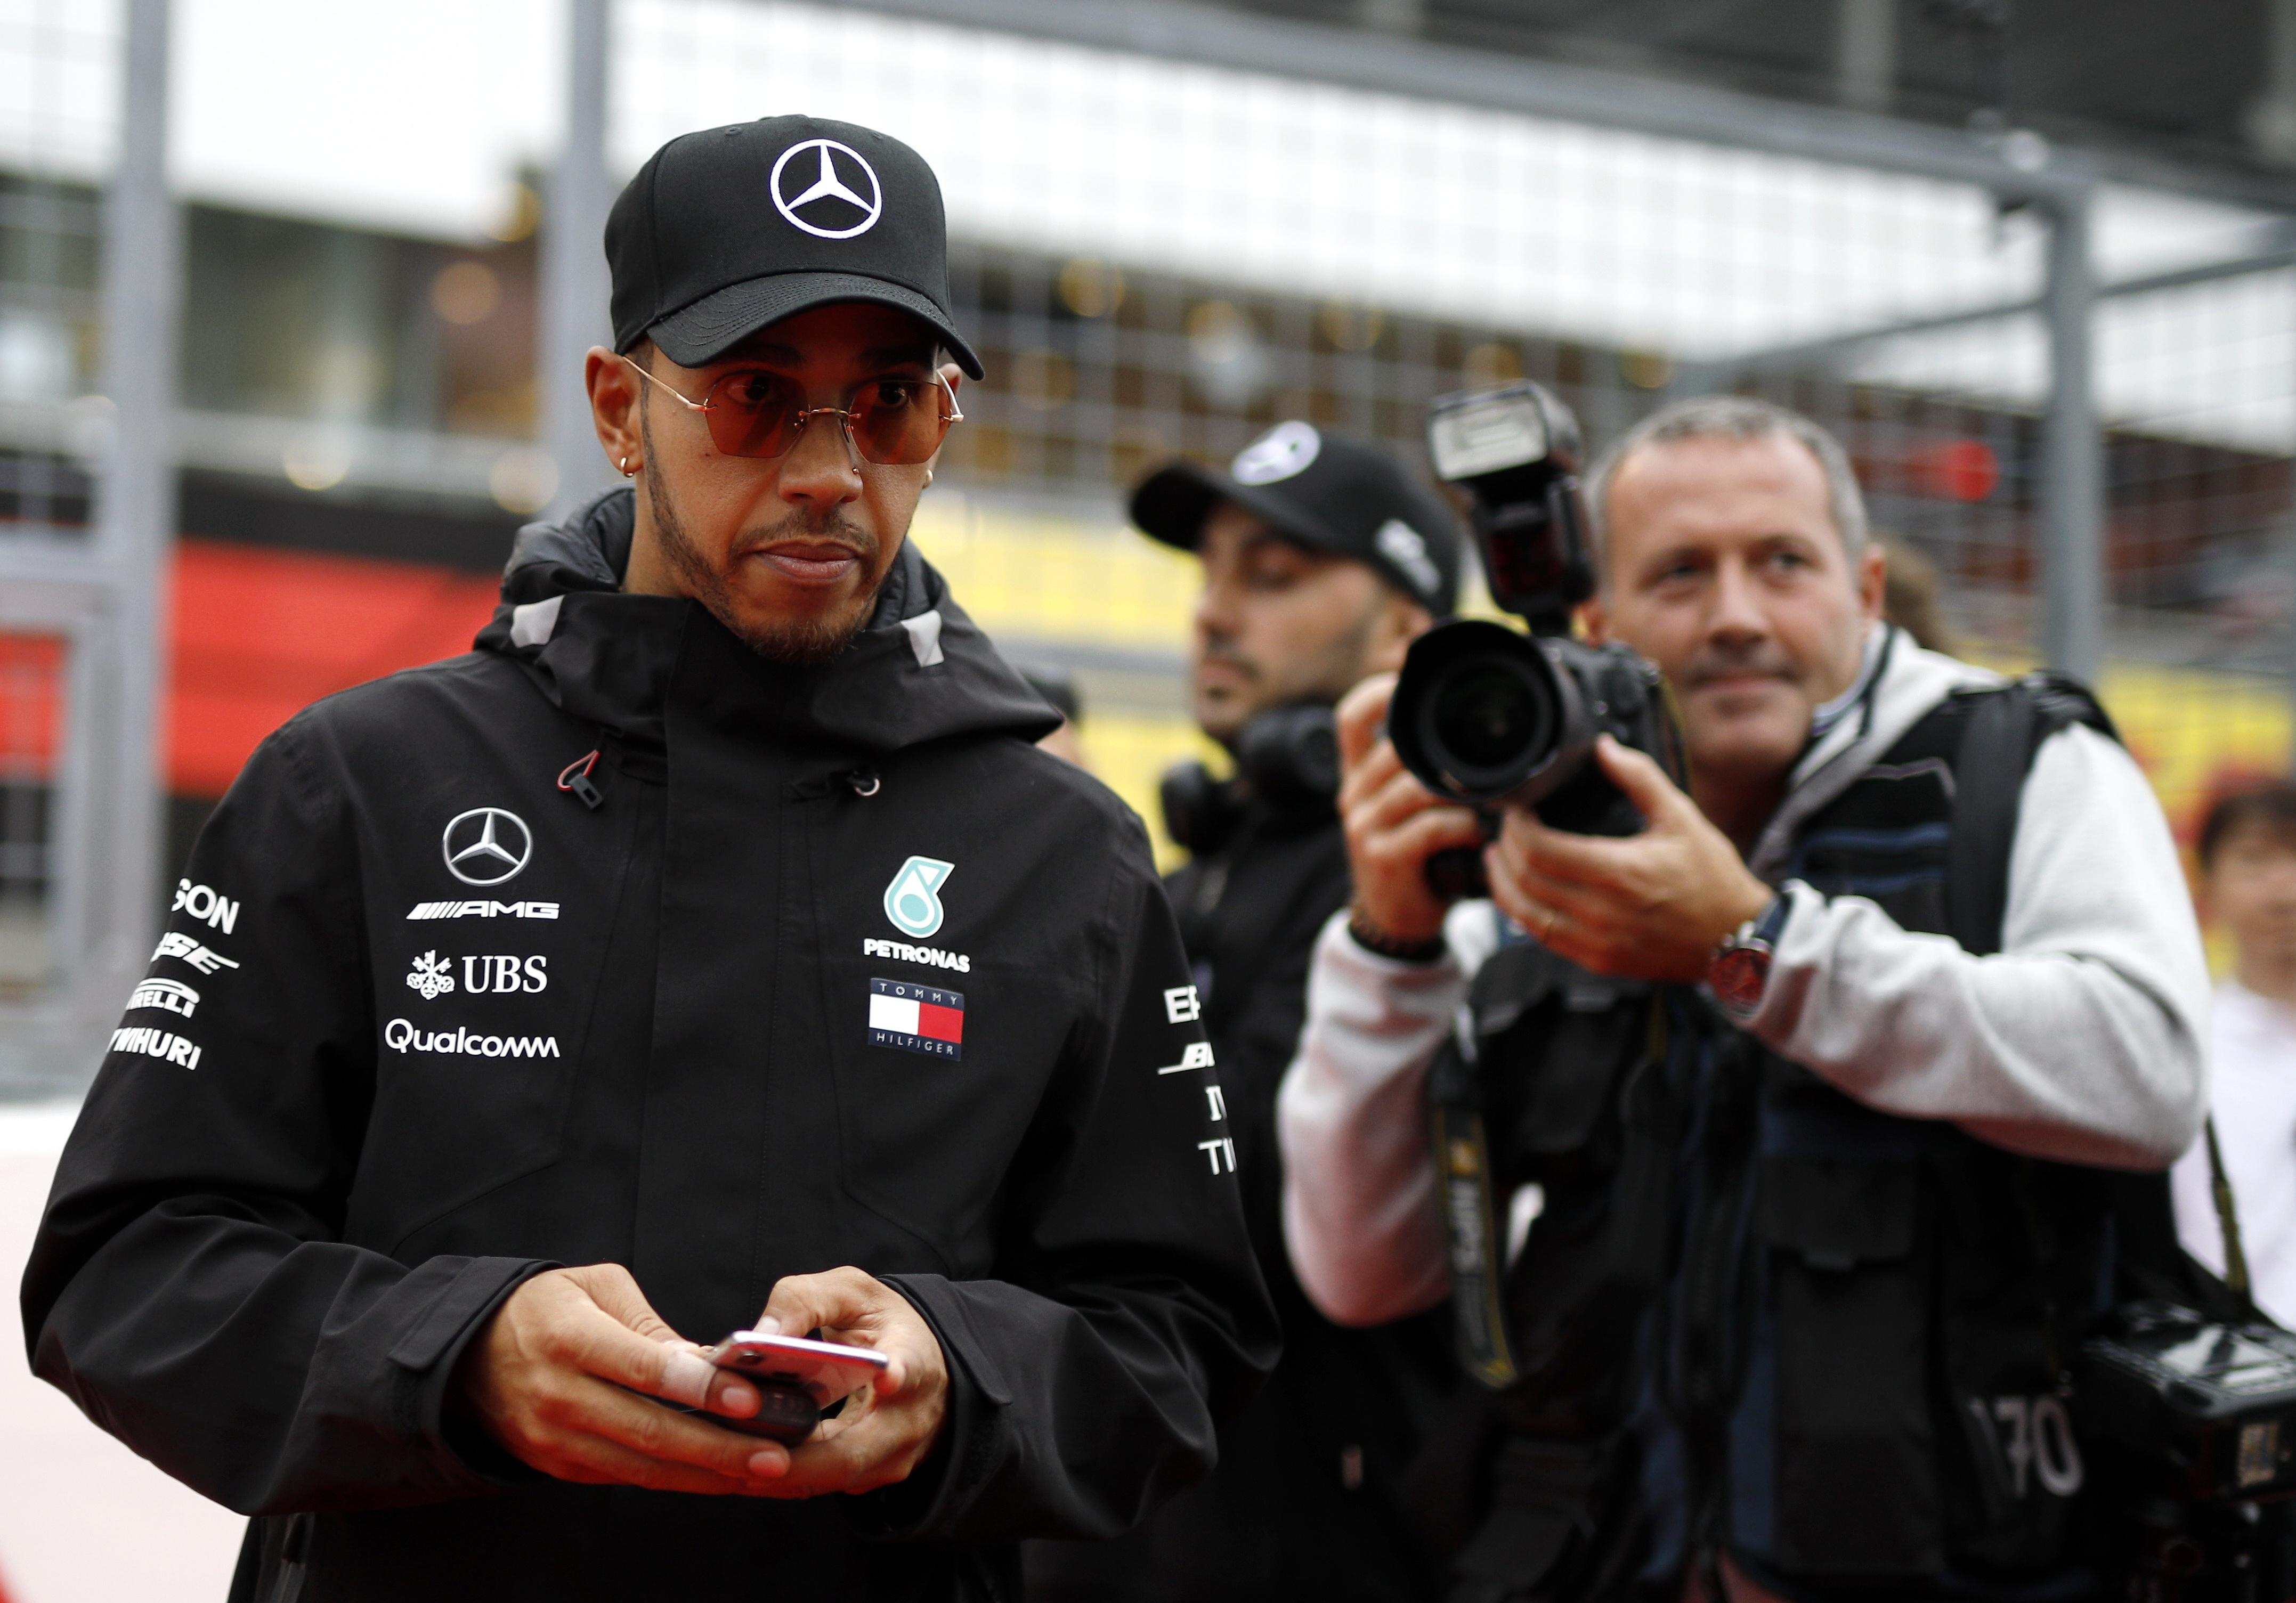 Lewis Hamilton will be aiming to extend his title lead in Japan